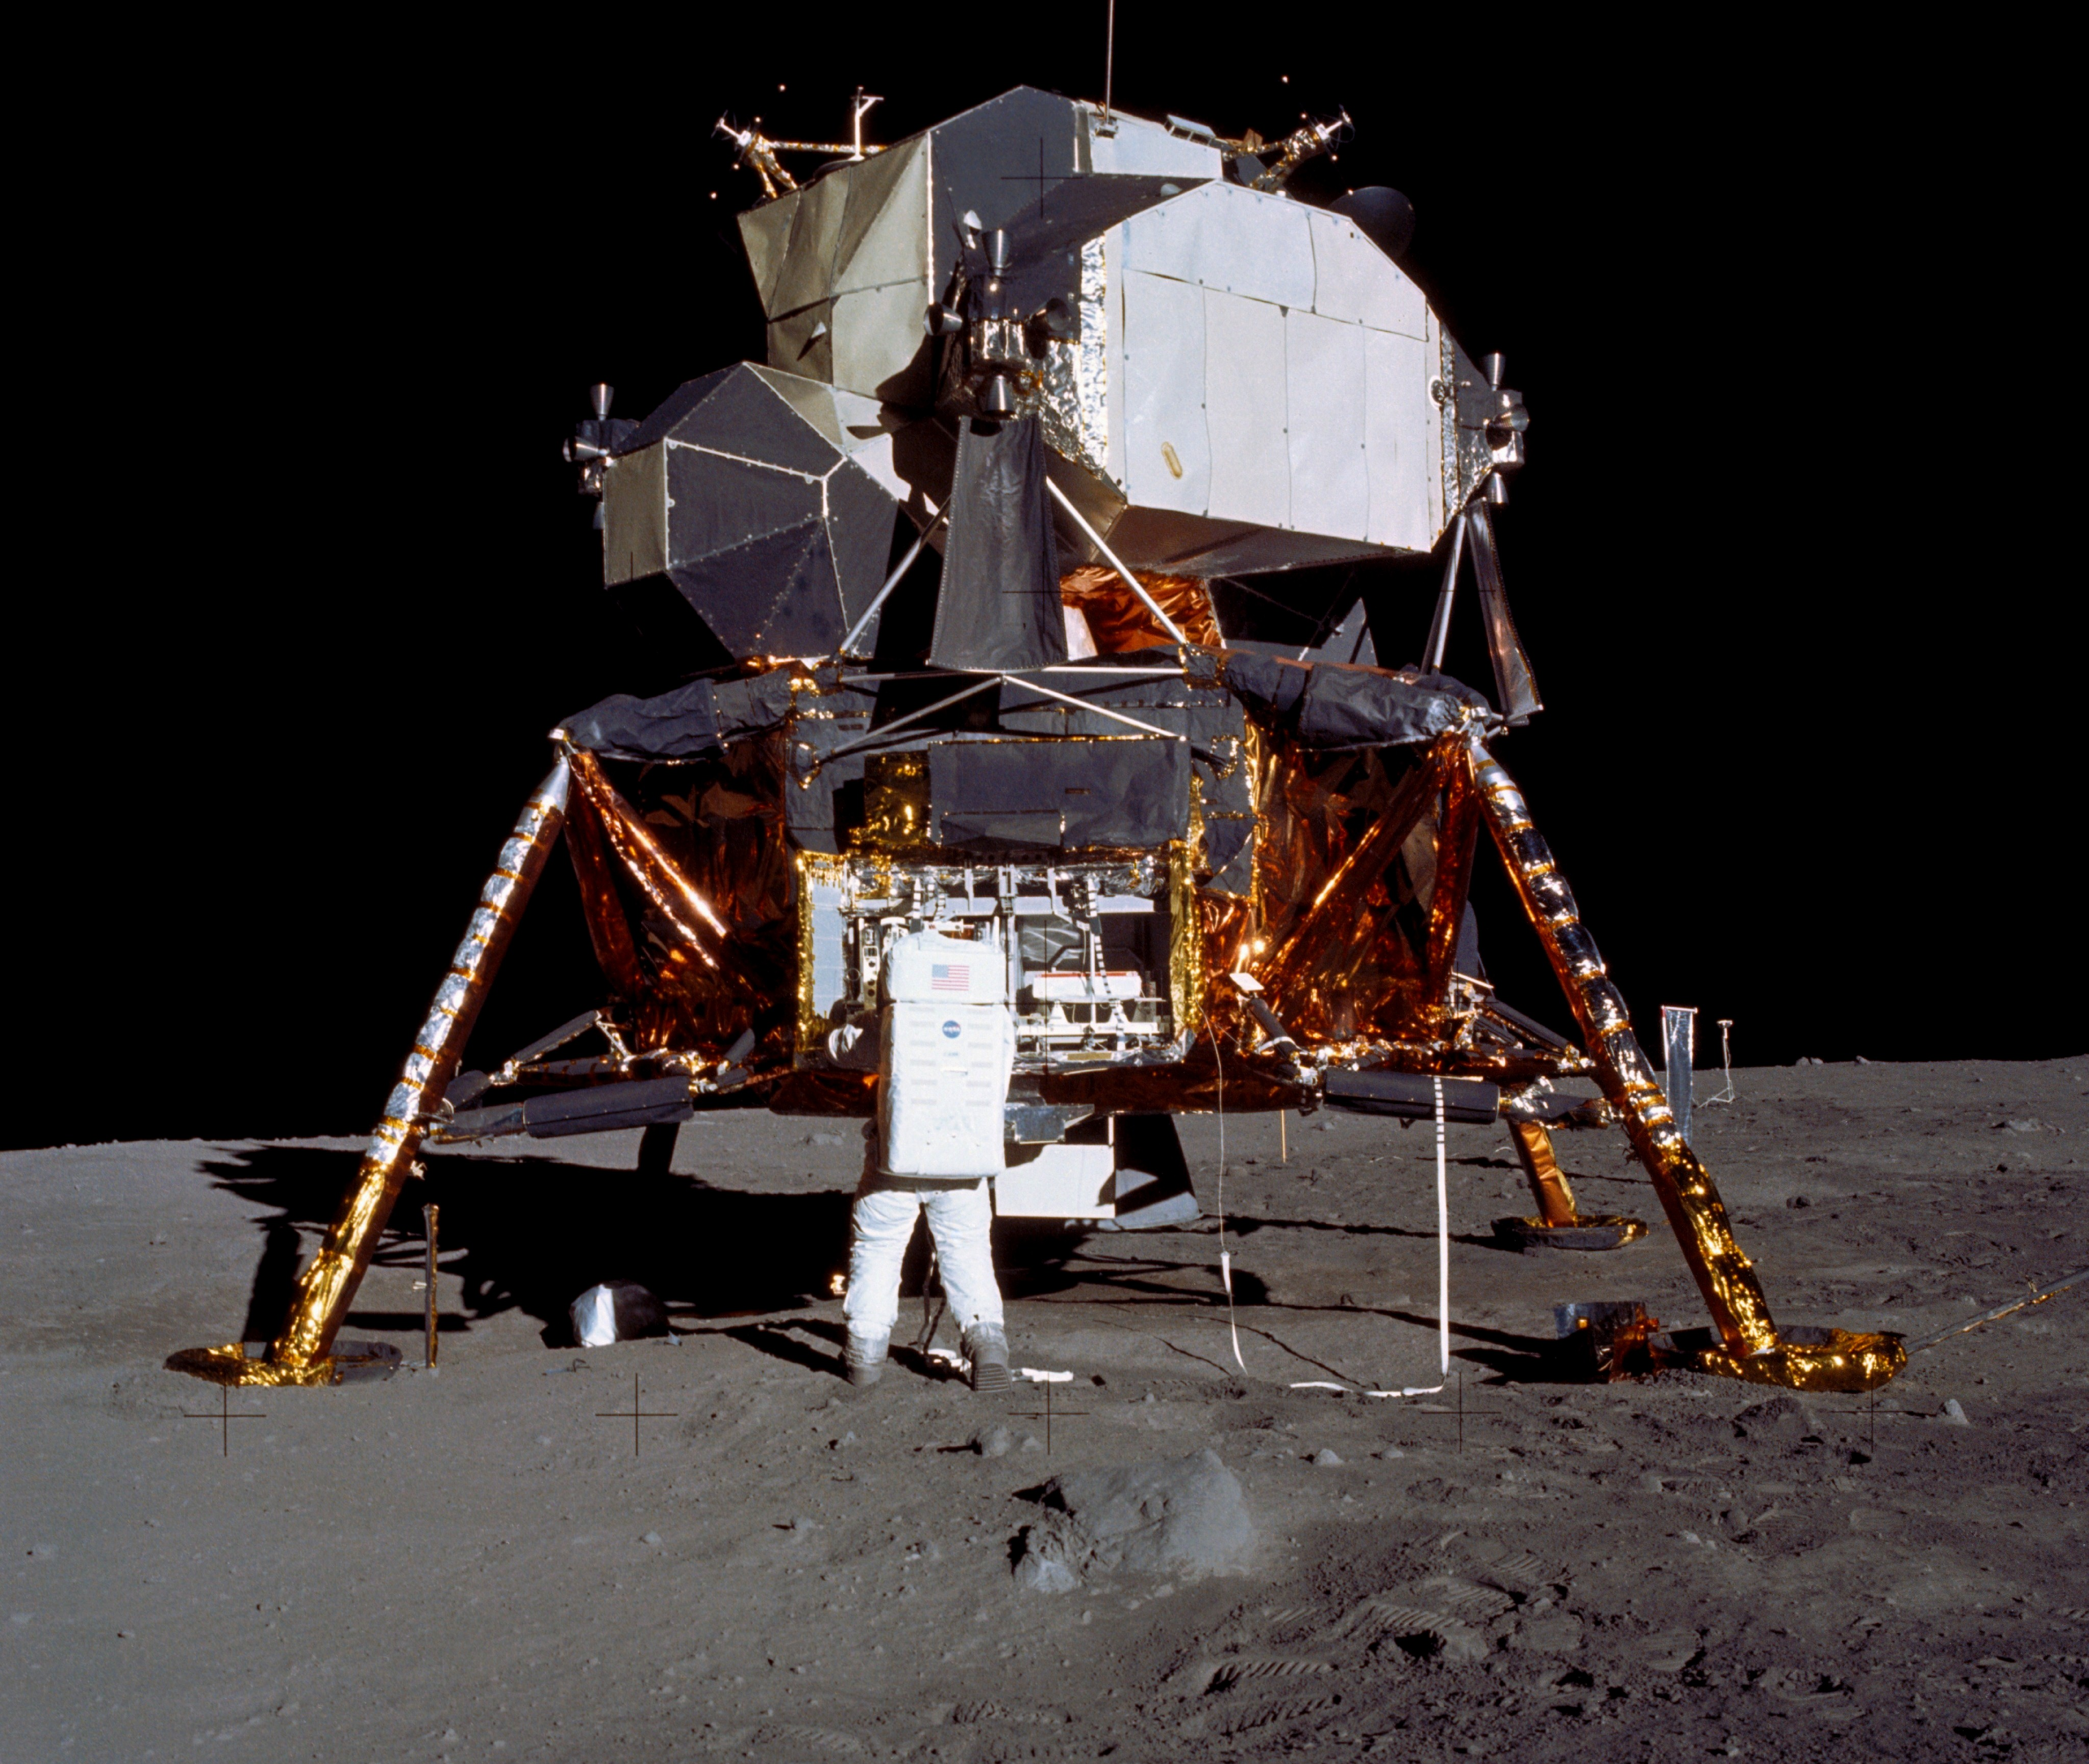 apollo 11 nasa moon - photo #5